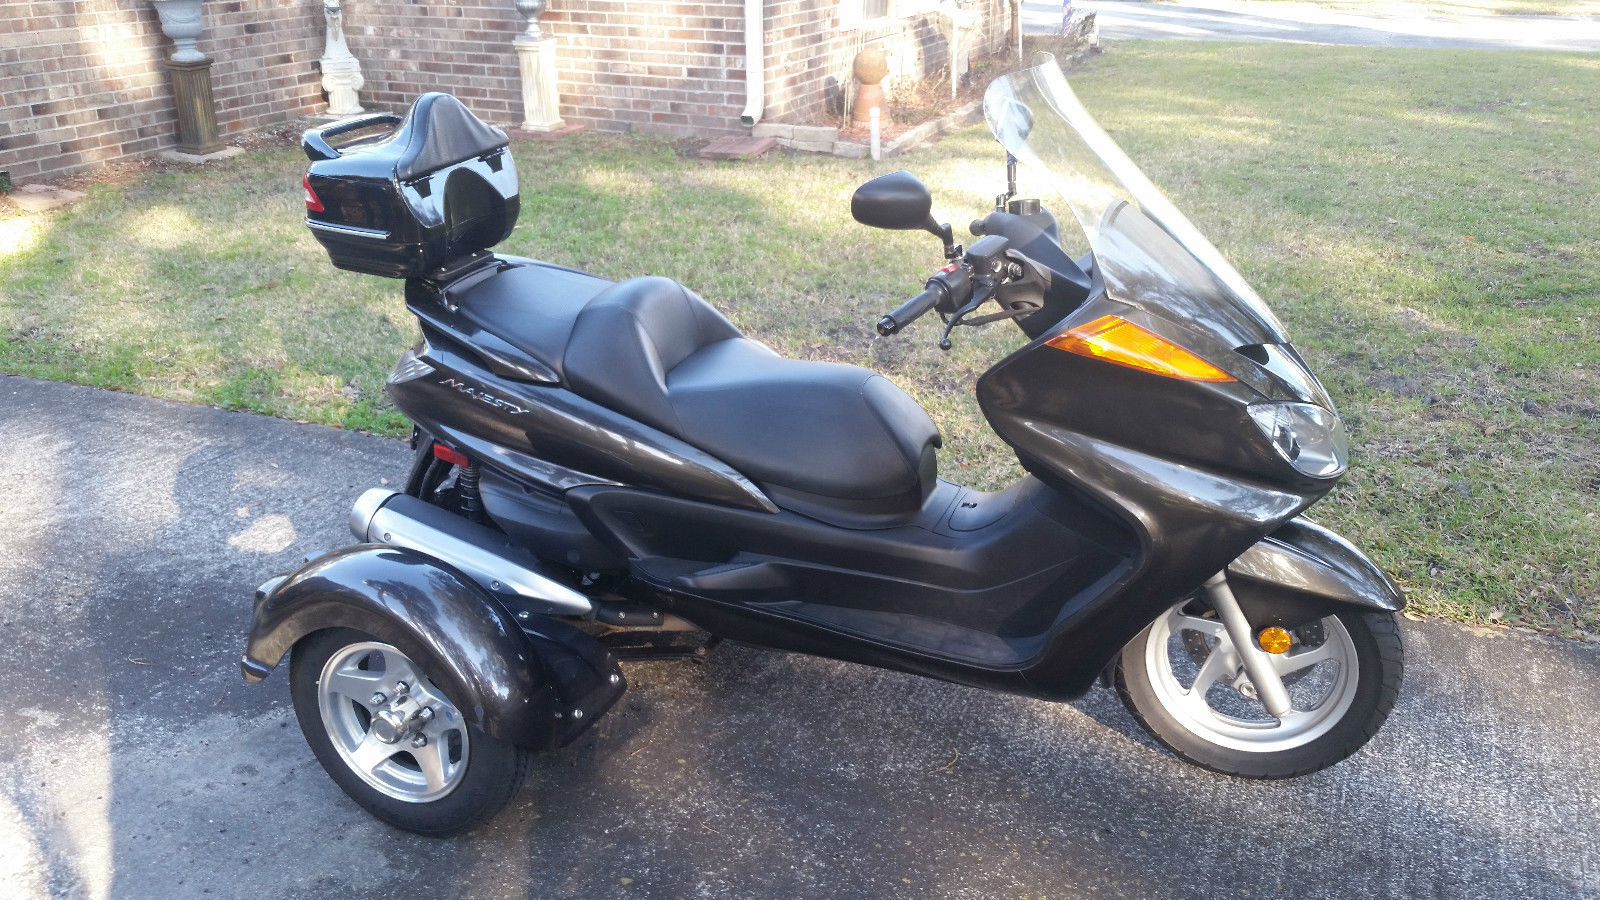 59 400cc scooters noticias del sector 2008 suzuki burgman 400cc scooter for sale in. Black Bedroom Furniture Sets. Home Design Ideas